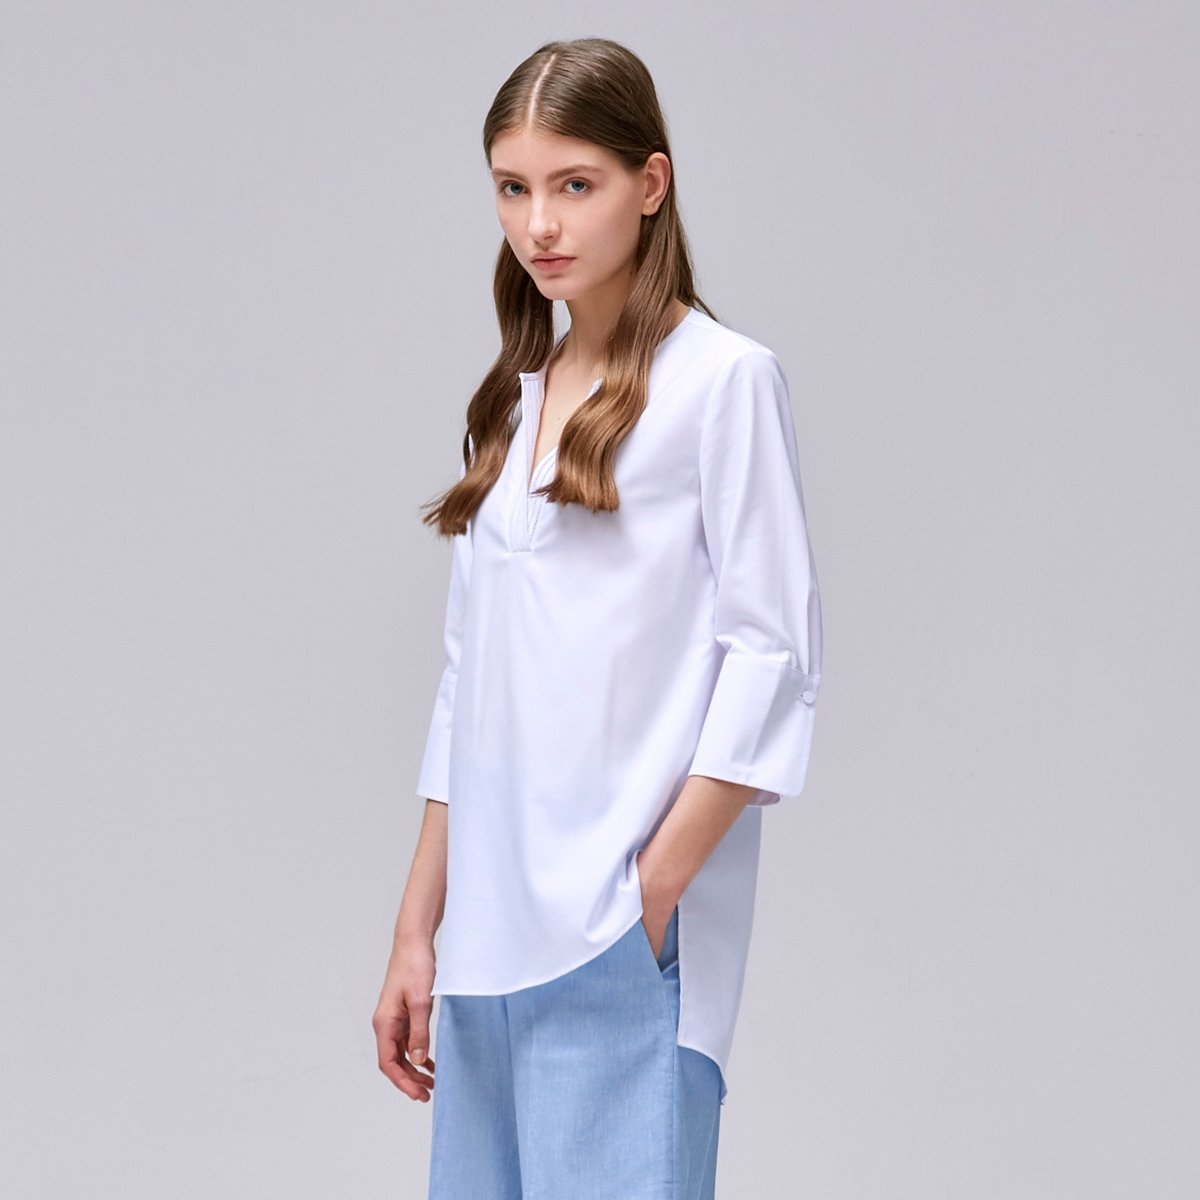 Women's V-neck Blouse (White)